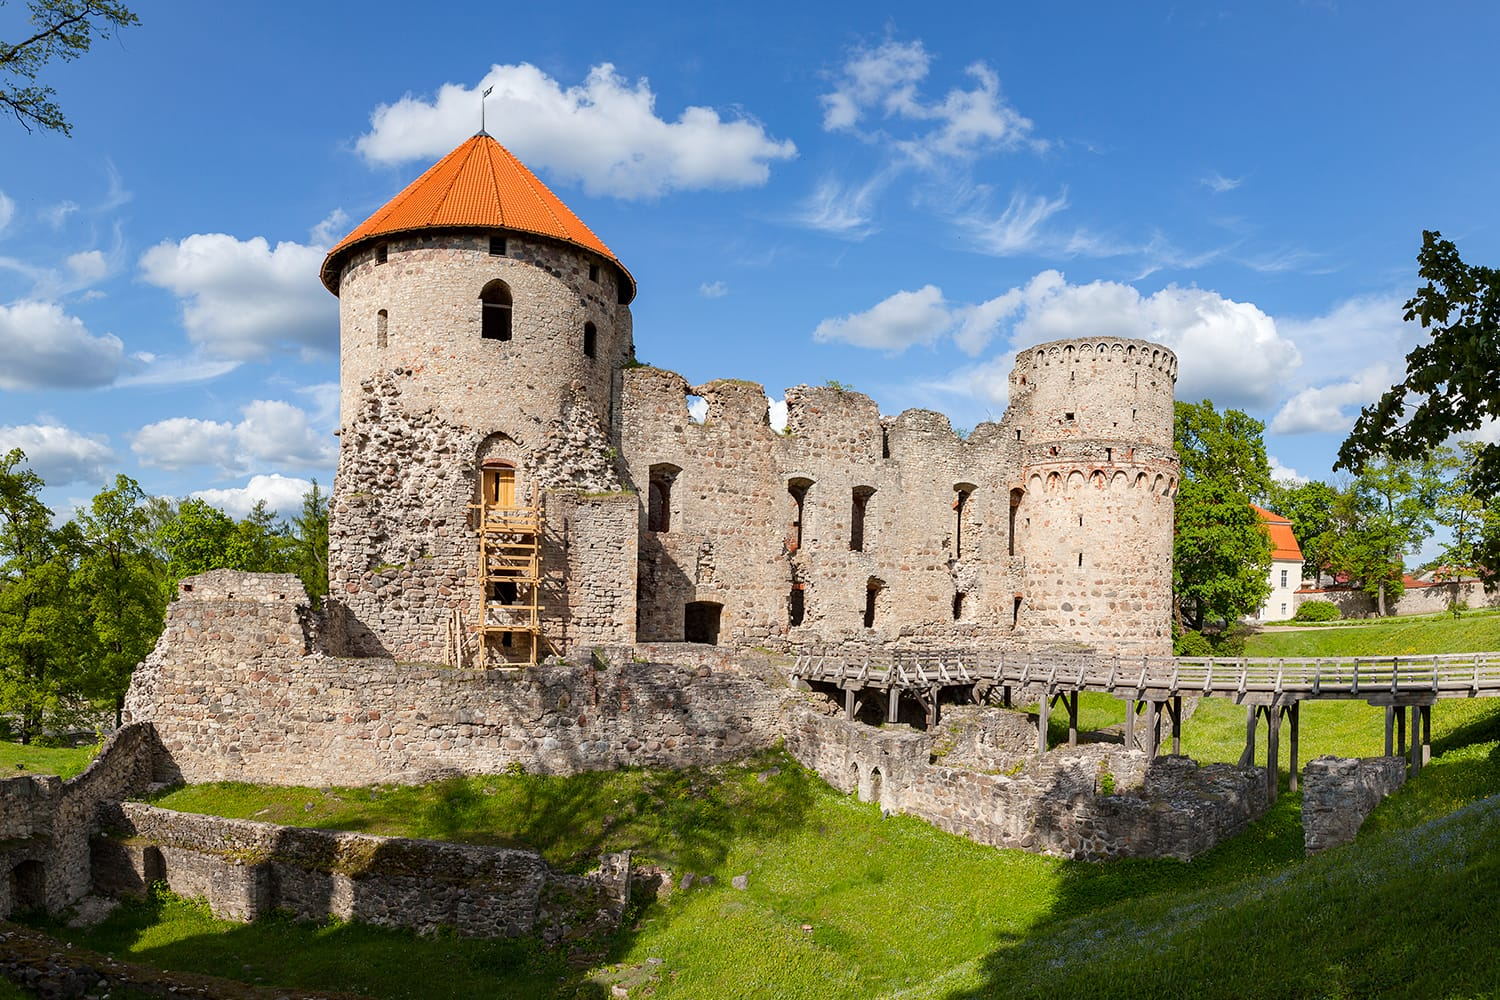 View of beautiful ruins of ancient Livonian castle in old town of Cesis, Latvia